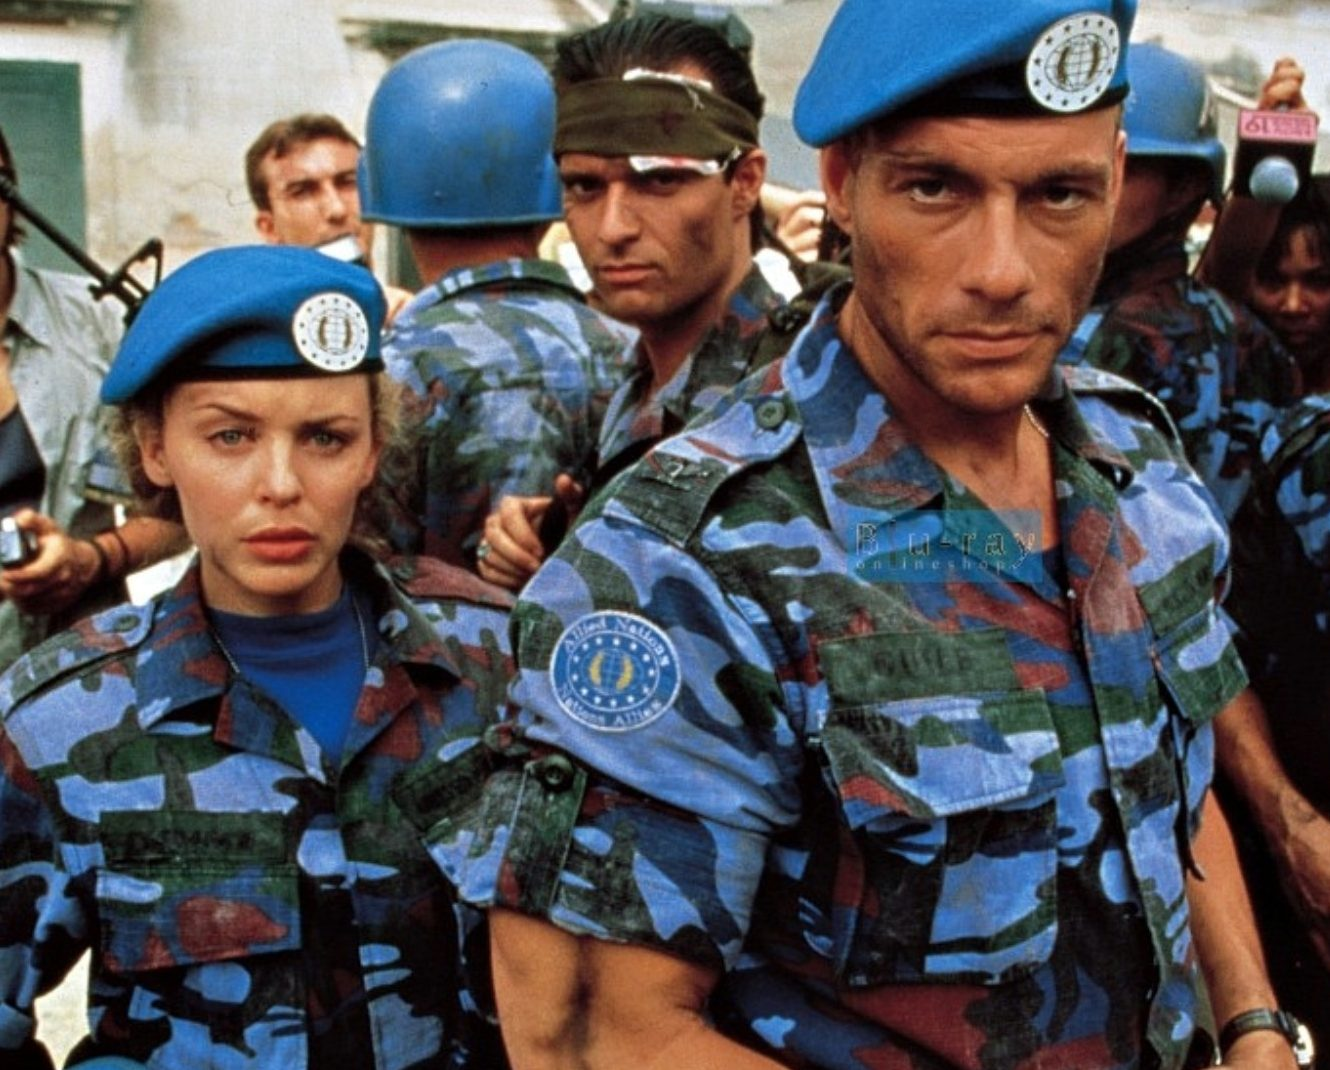 Street Fighter e1621854687182 25 Things You Probably Didn't Know About Jean-Claude Van Damme